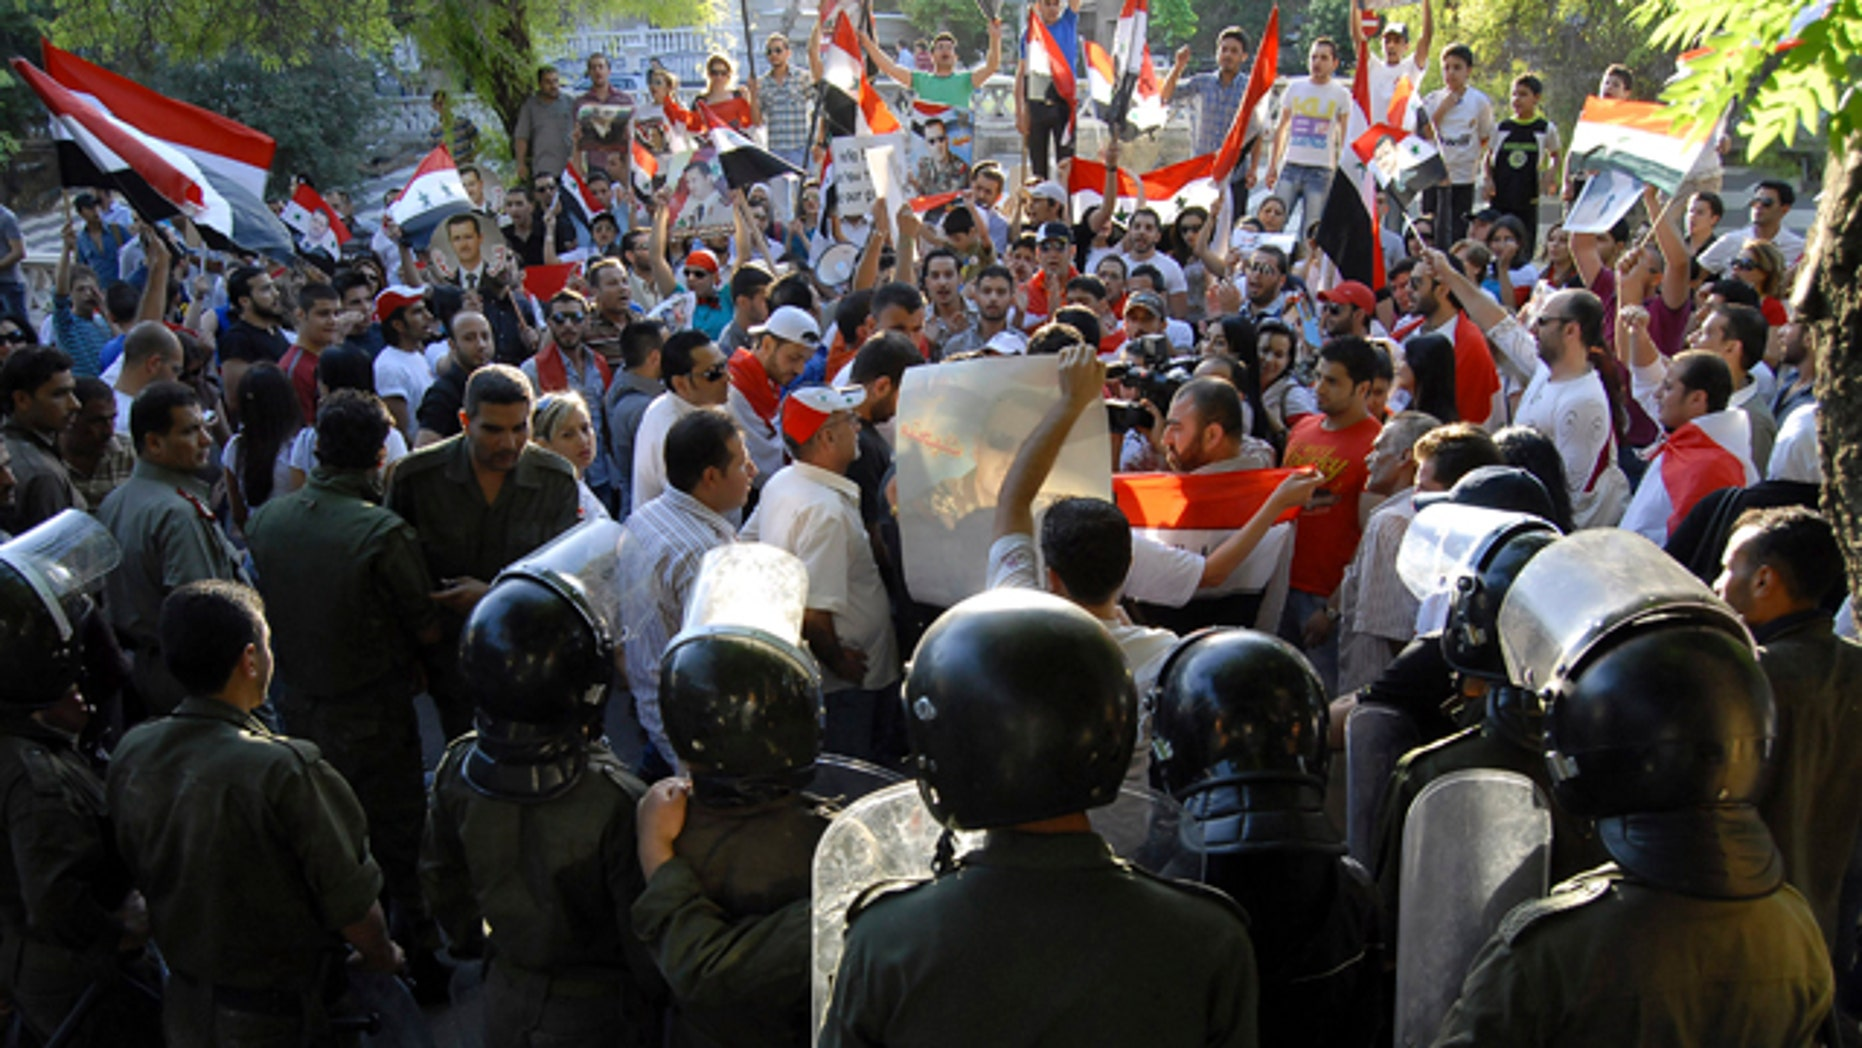 June 9: Syrian riots police officers stand guard in front of supporters of Syrian President Bashar Assad during a demonstration near the European Union office, in Damascus, Syria.